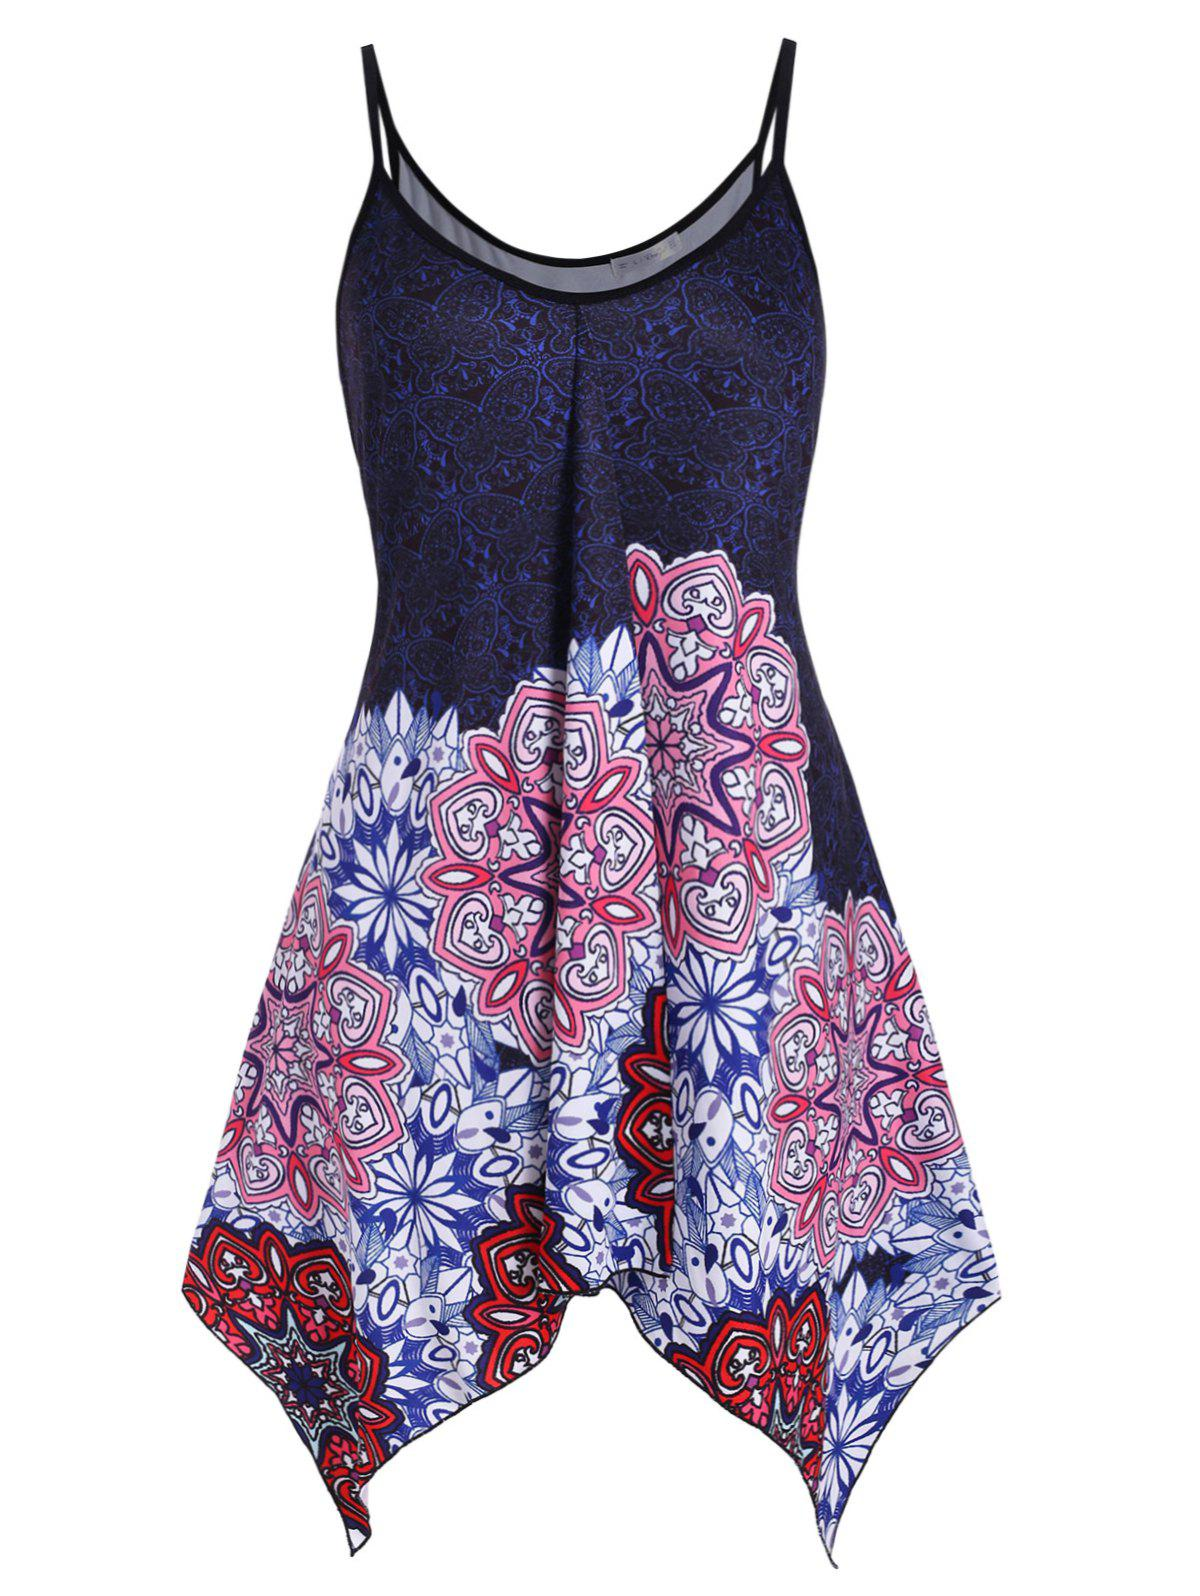 Butterfly Printed Handkerchief Longline Plus Size Cami Top - BLUE L